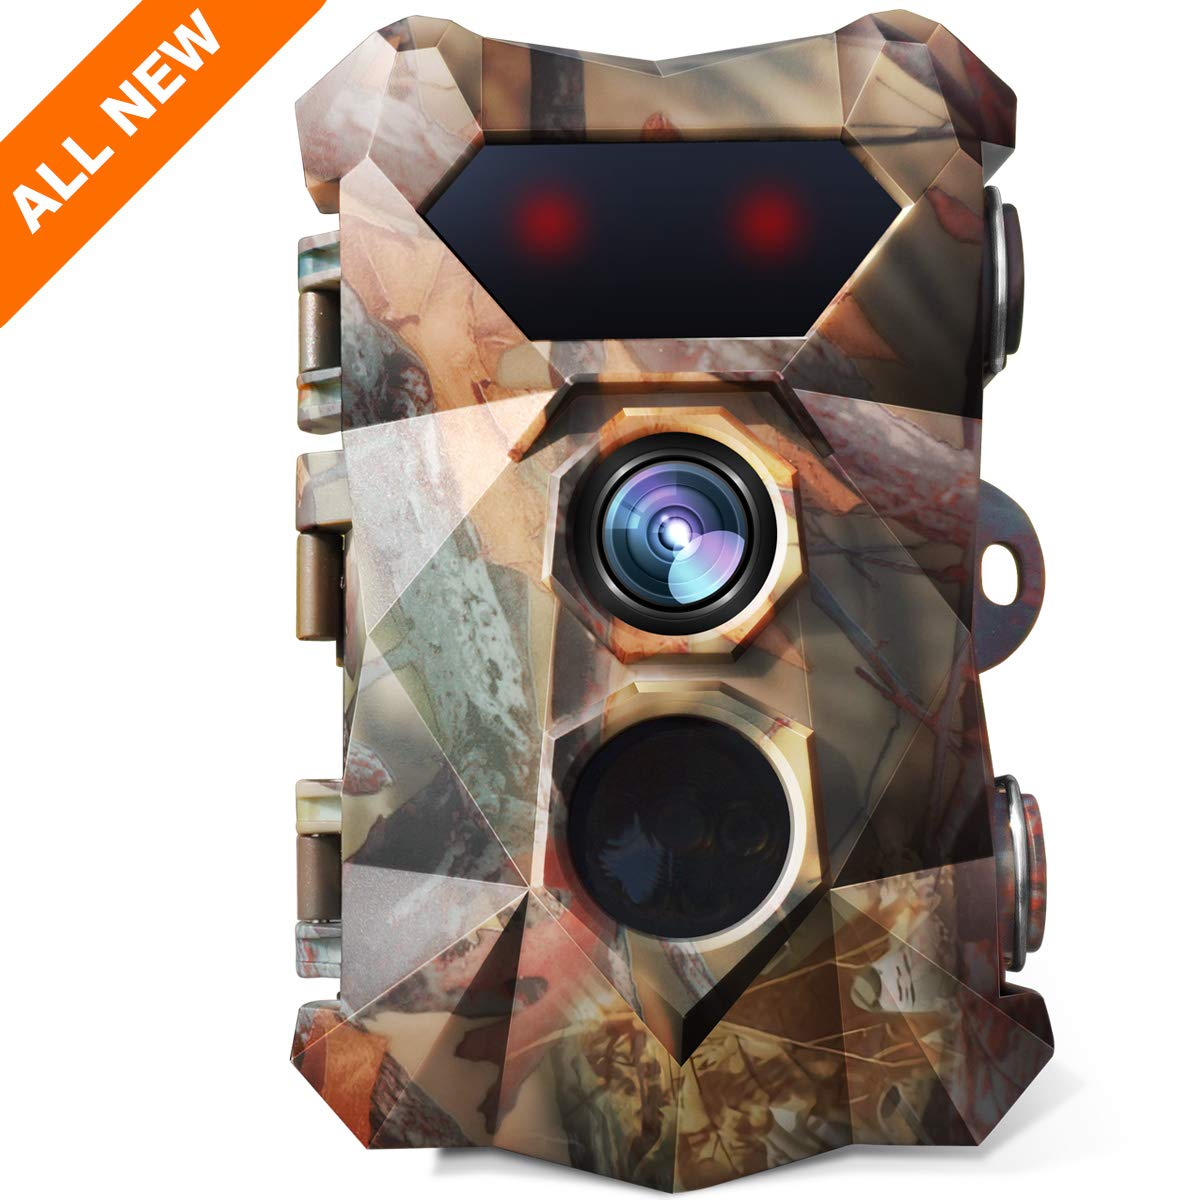 """AIMTOM 16MP 1080P Trail Camera 0.3s Trigger Speed Motion Activated Hunting Cam Waterproof Wildlife Security Monitor w/ 2.4"""" LCD Screen"""